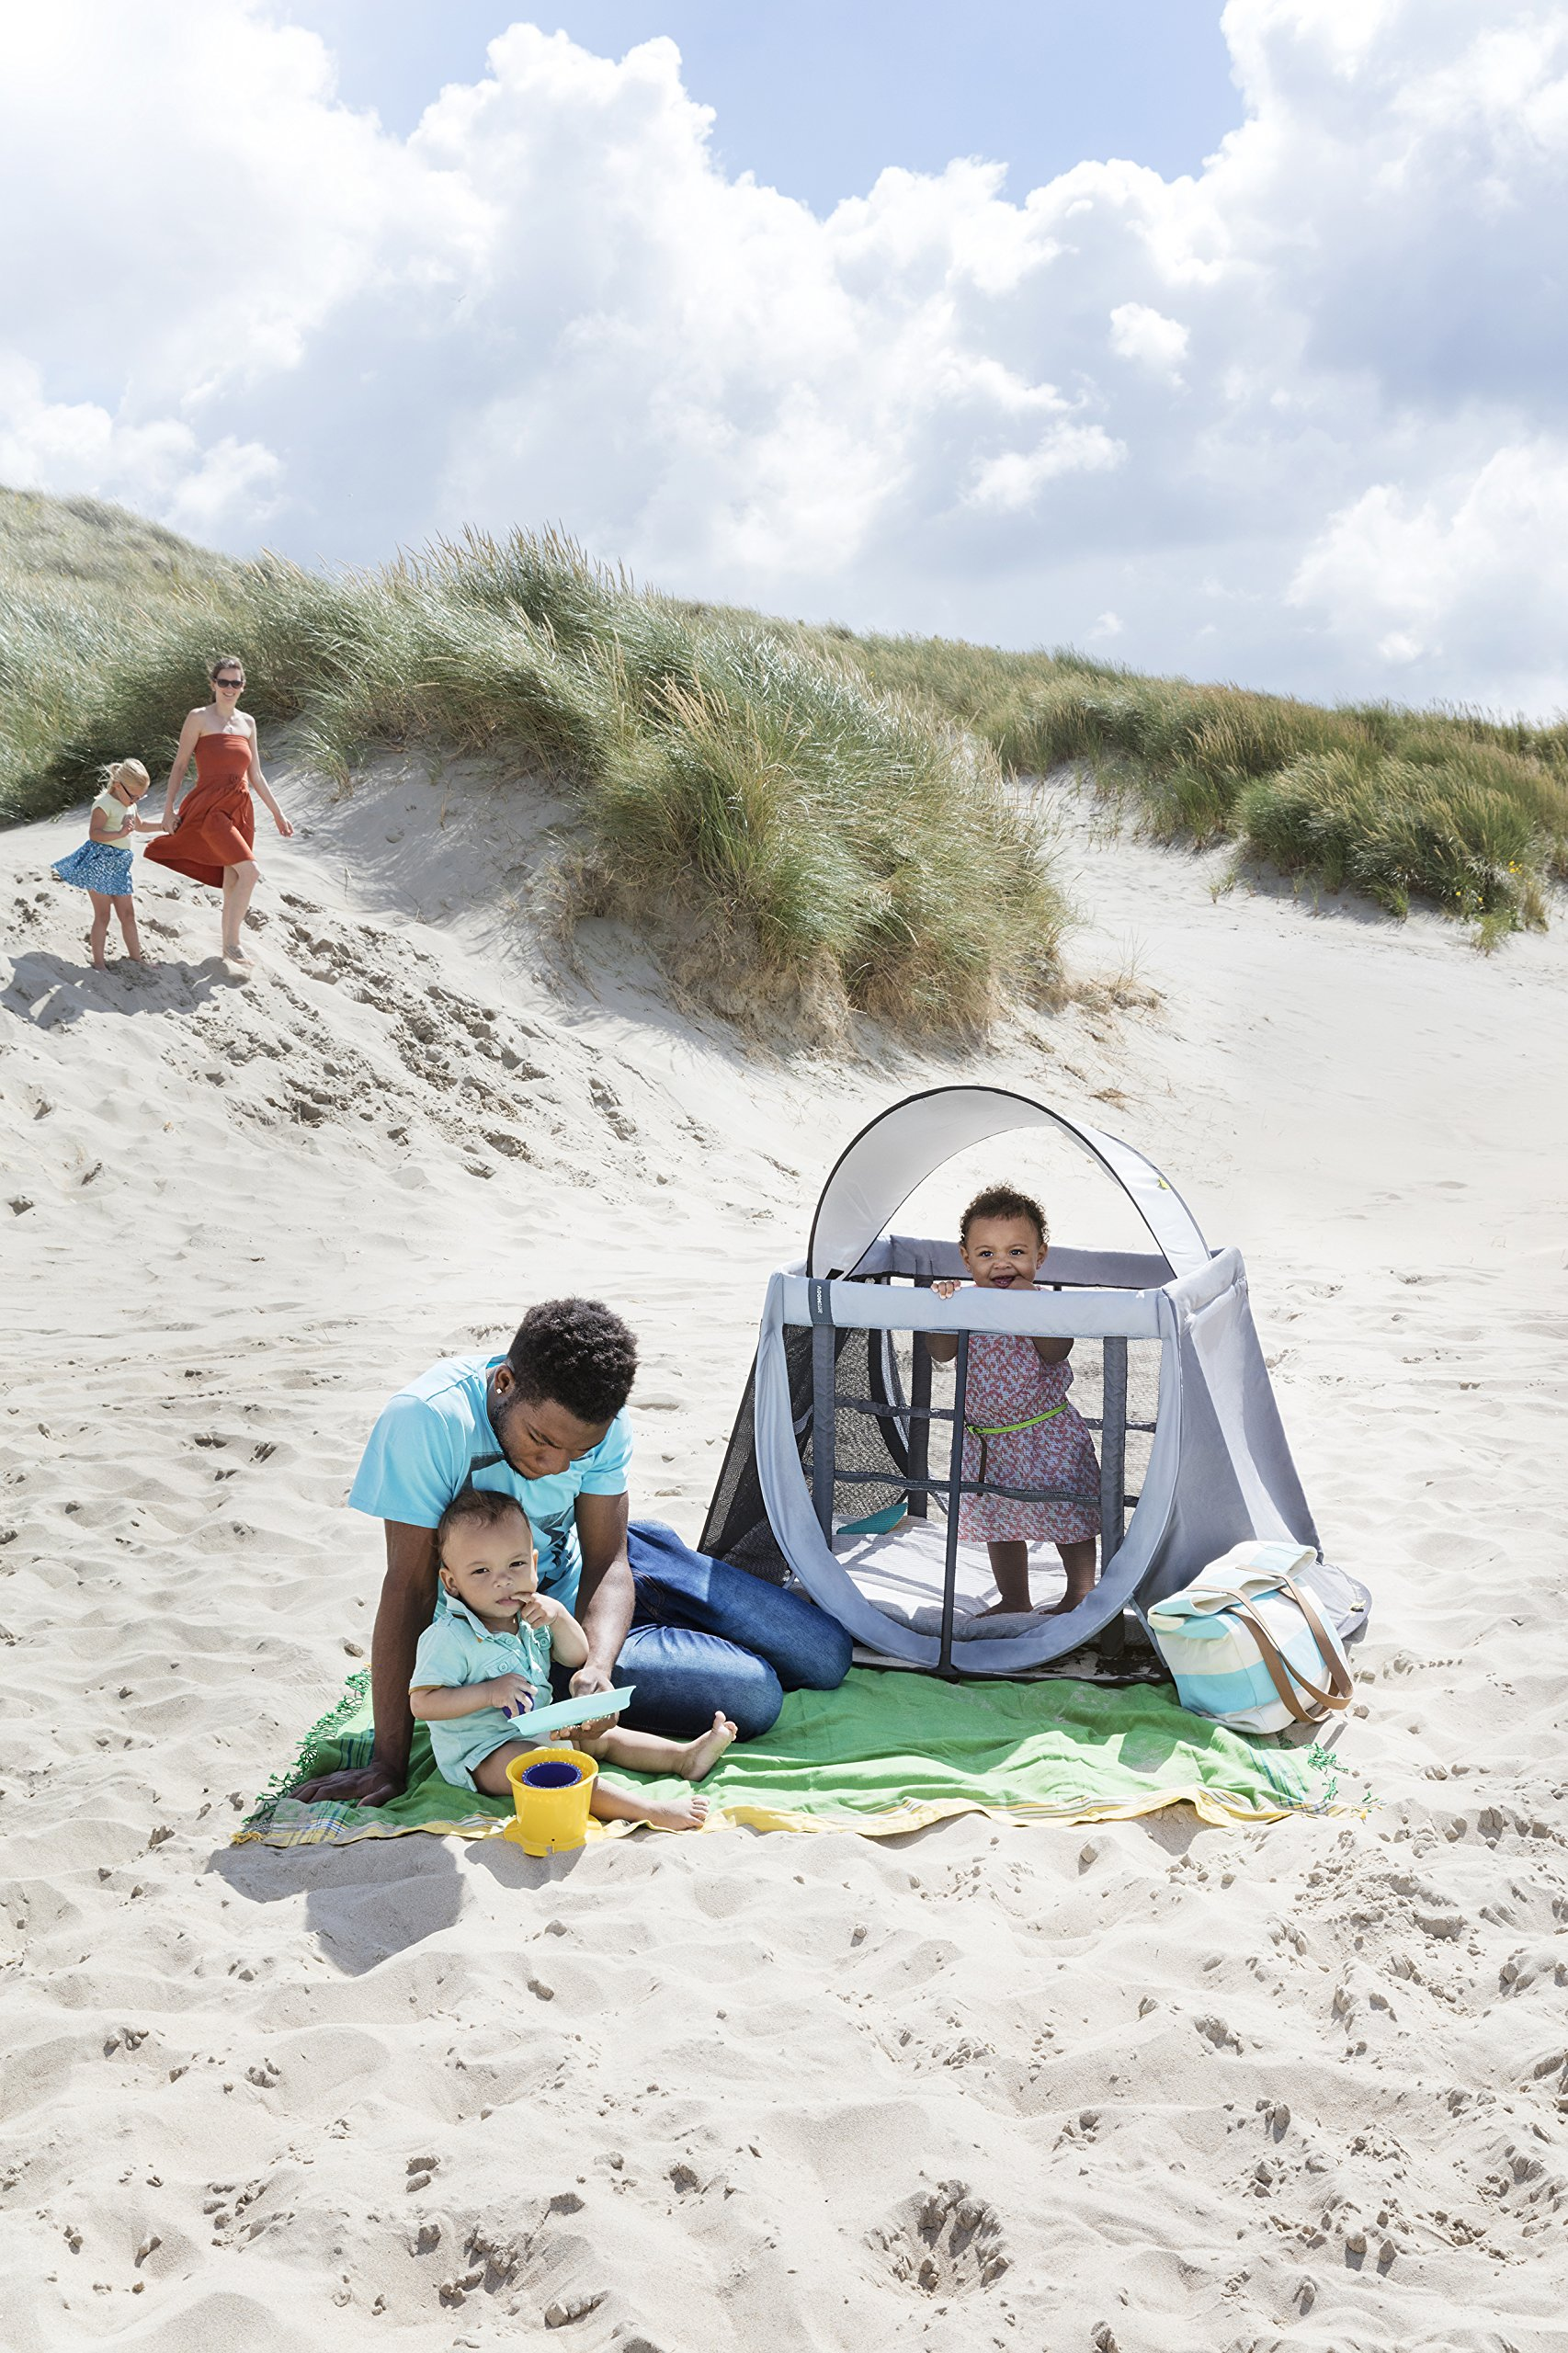 AEROMOOV - Instant Travel Bed - Allows Your Child to take a nap Wherever You are - Light and Compact - White Sand AeroMoov COMPACT AND LIGHT: No more carrying a heavy and bulky travel bed! The AeroMoov Instant Travel Bed weighs less than 5kg and is easy to store thanks to its slim and elegant storage bag. TO BE TAKEN EVERYWHERE: At Grandma and Grandpa's, on the beach or in your garden, allow your little one to take a pleasant nap or play, without ever losing sight of him thanks to the transparent sides. FAST ASSEMBLY AND STORAGE: Installing your Instant Travel Bed becomes child's play. Mount and dismantle it in just 2 seconds. 8